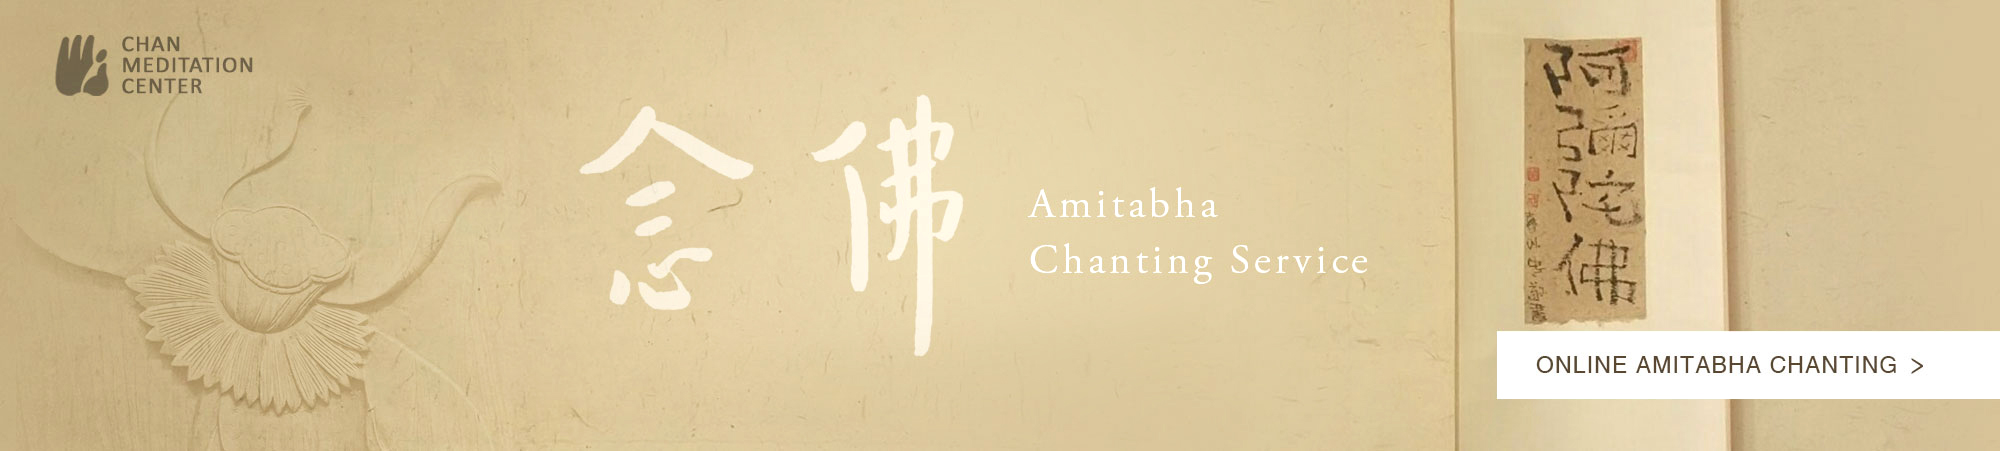 Online Chanting Service